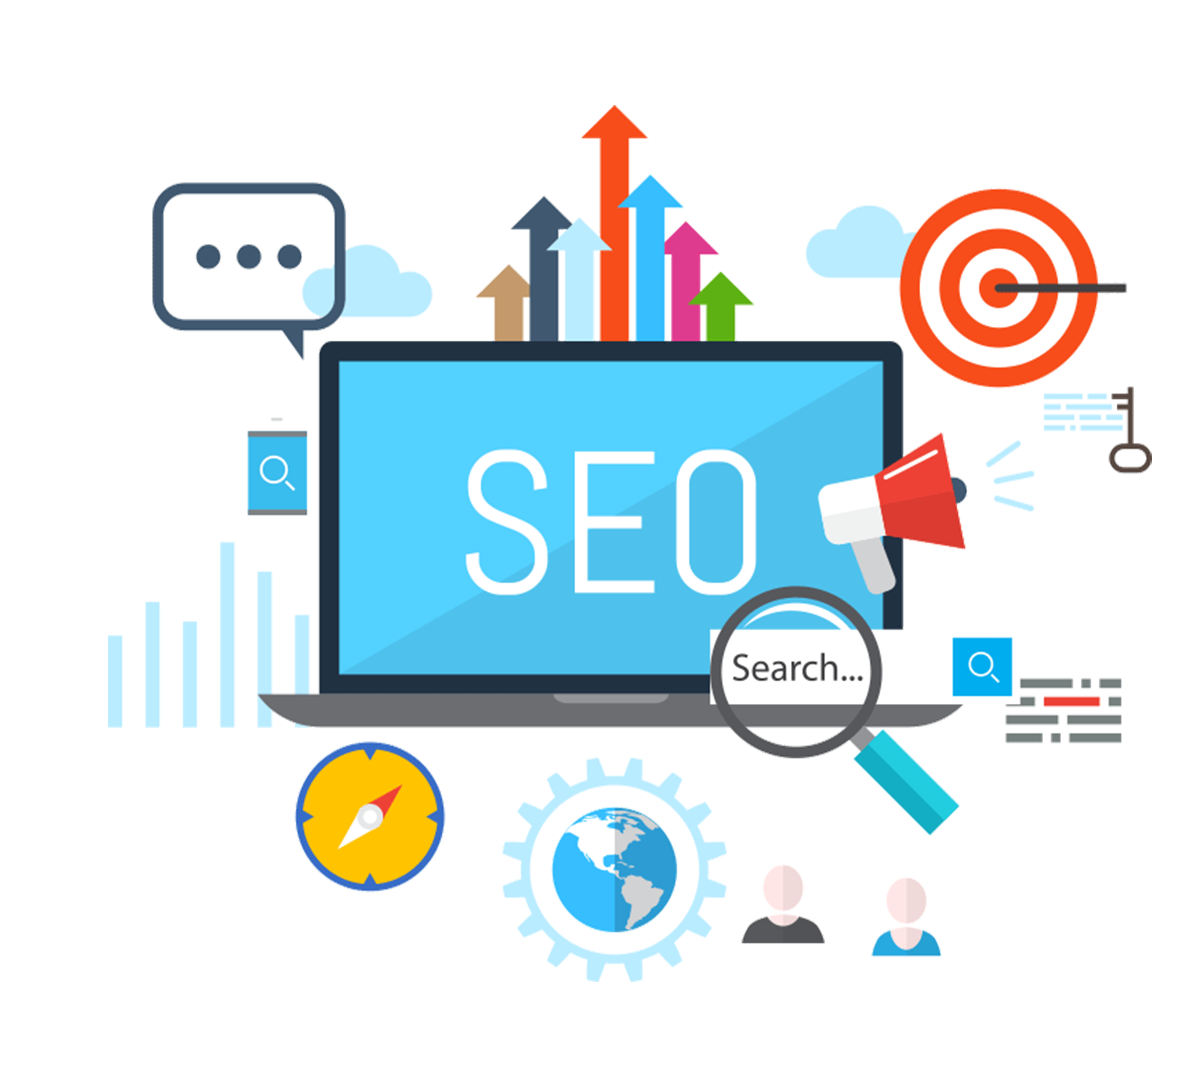 http://arksstechnologies.com/wp-content/upload/2018/06/seo.png